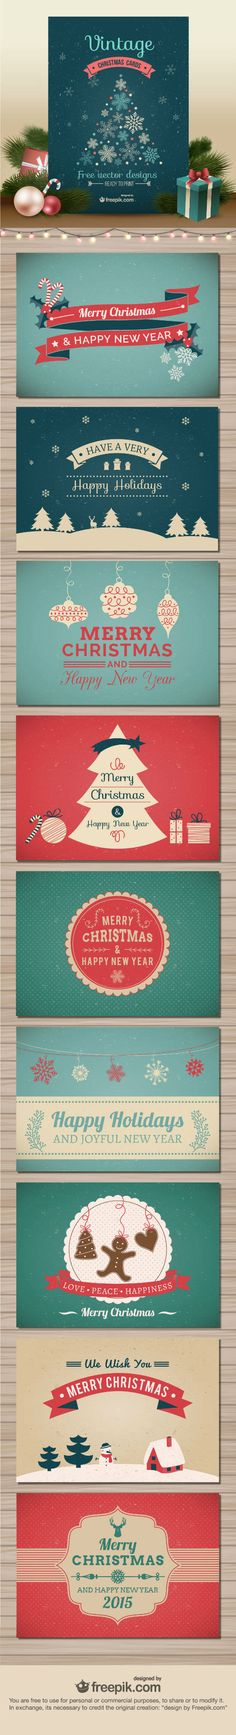 Christmas Card Greetings Business Sayings : 10 Free Vector Christmas Cards Created by Freepik; Creative Christmas Cards, Xmas Cards, Holiday Cards, Business Christmas Cards, Noel Christmas, Christmas Design, Vintage Christmas, Christmas Ideas, Christmas Graphics